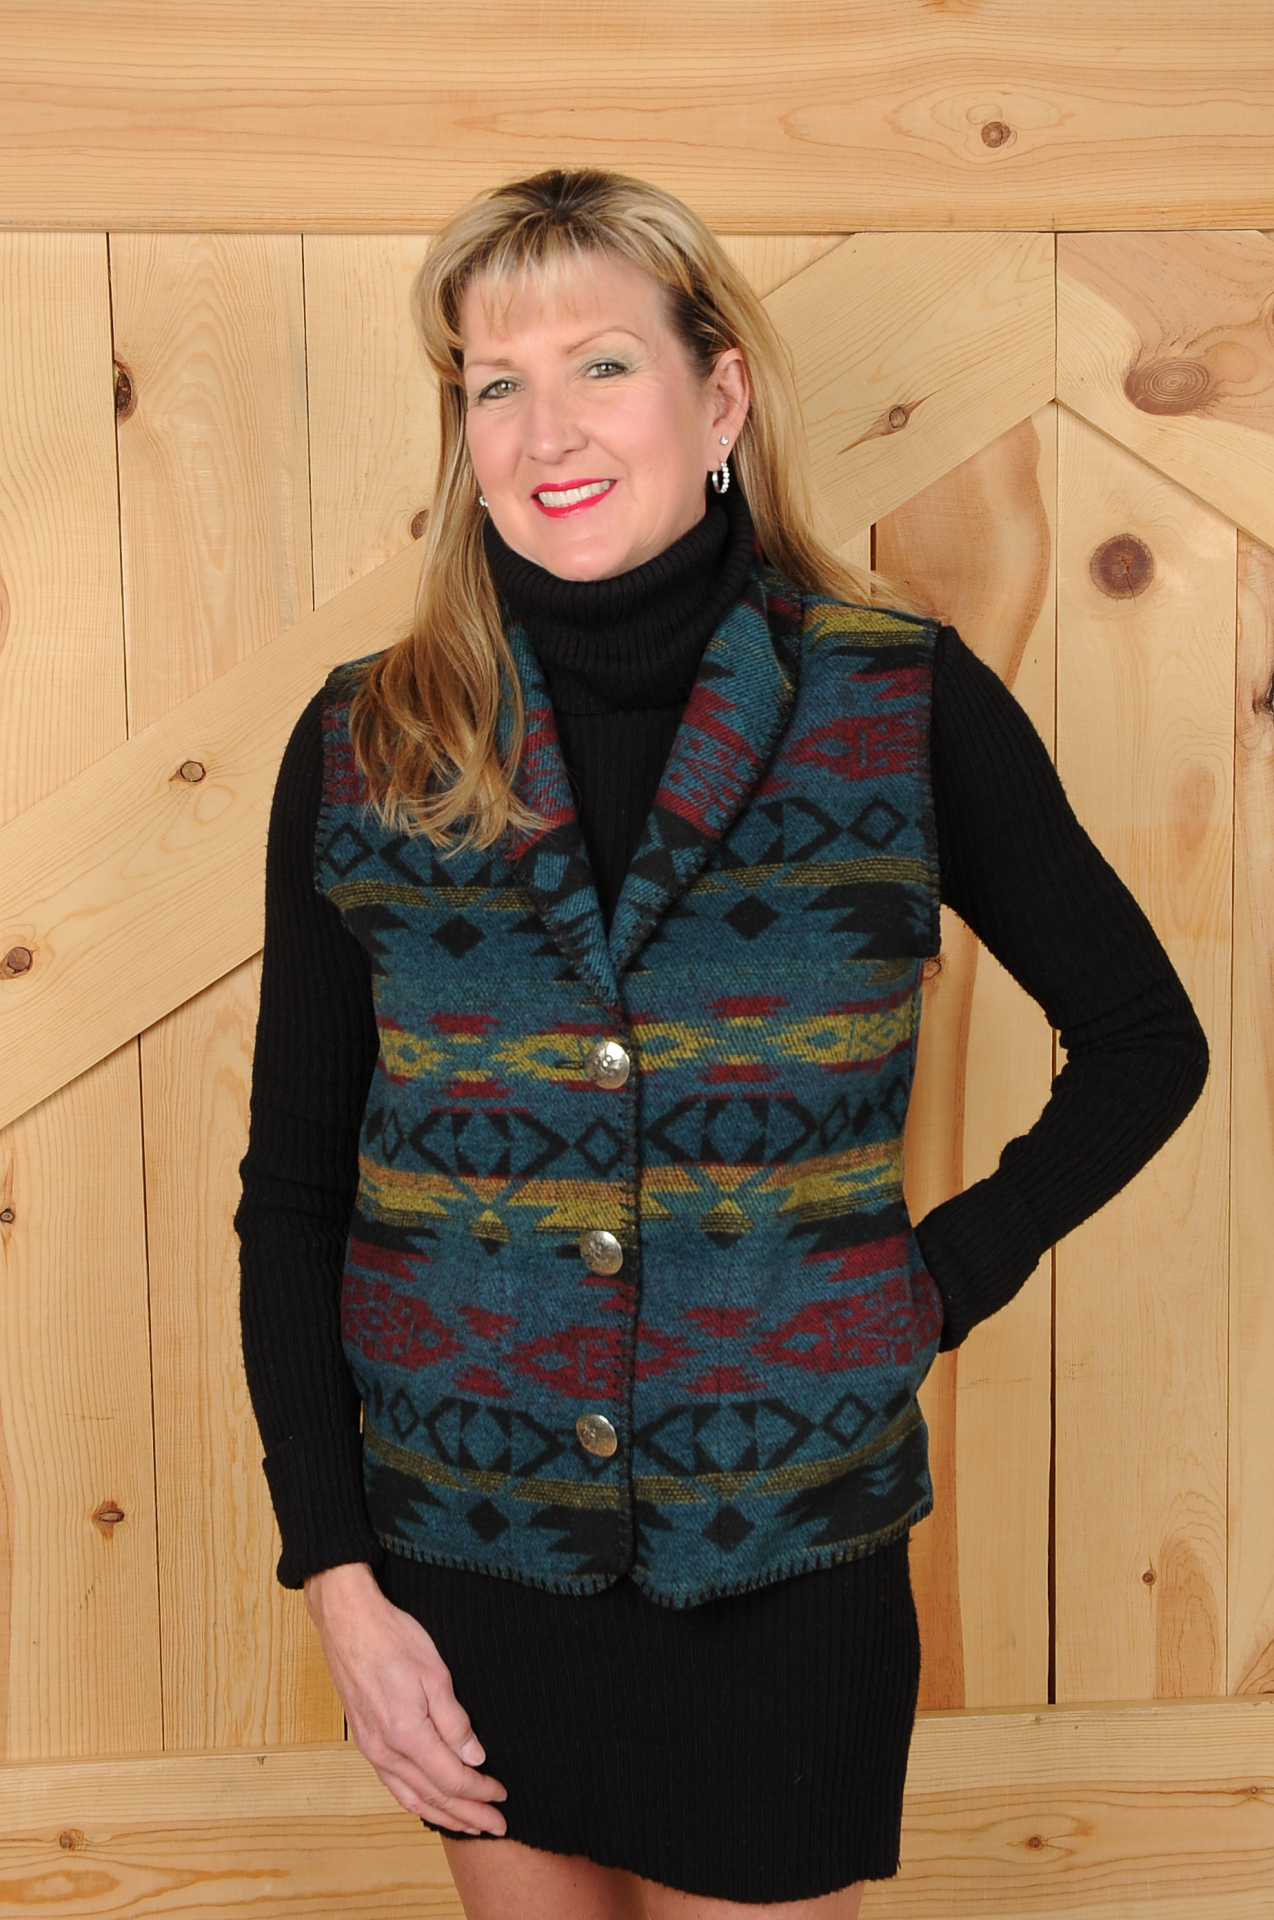 #130TM - TOTEM SHAWL COLLAR VEST - WAS $99.95 -- SALE $49.98 -- SMALL ONLY!